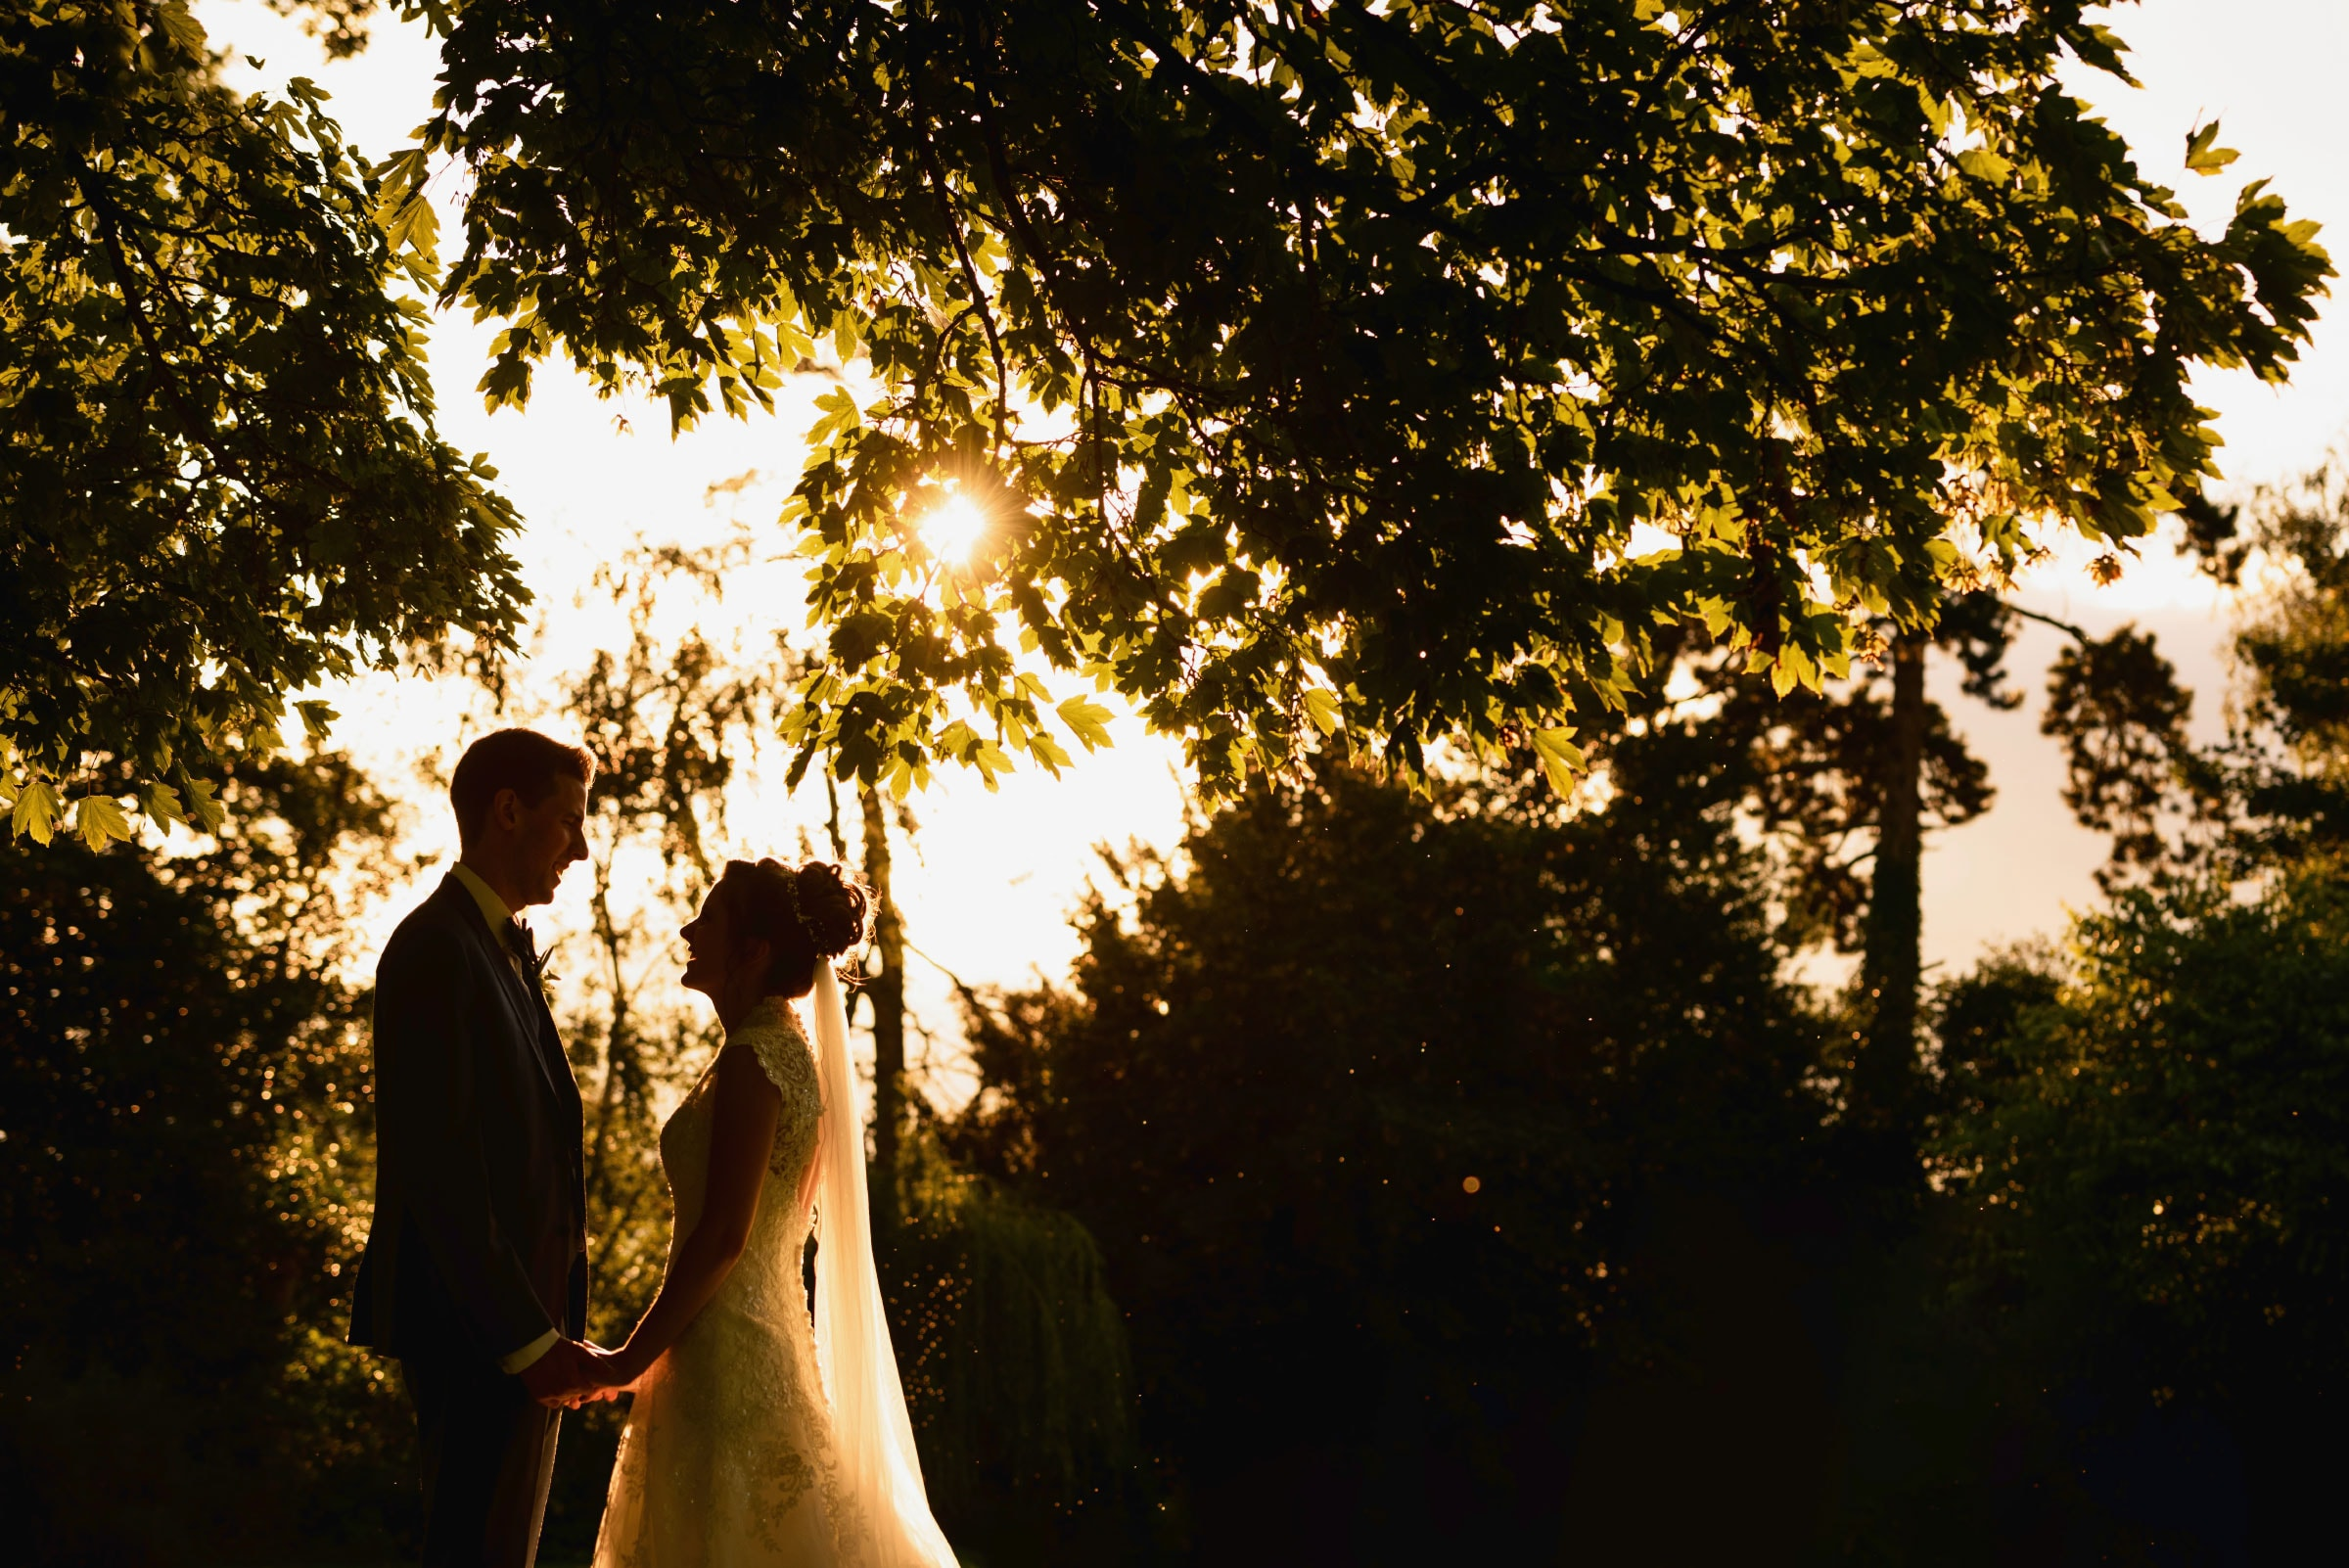 Bride and groom silhouetted against evening sunlight and surrounded by trees